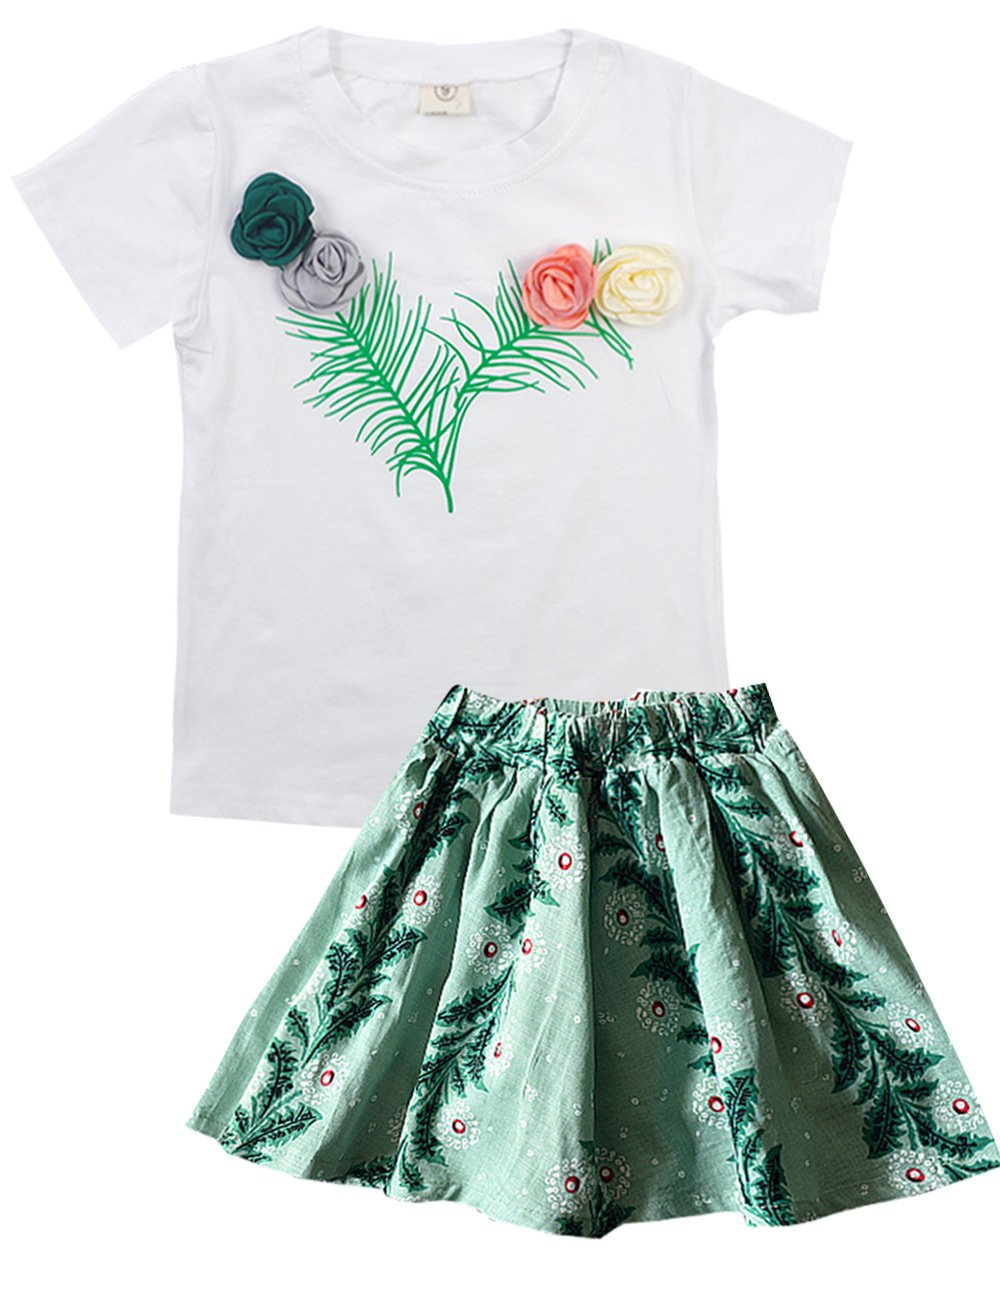 Spring&Gege Little Girls' Short Sleeve Rose Applique Tops and Pattern Skirt Sets 2Pcs Summer Outfits Size 5-6 Years Green